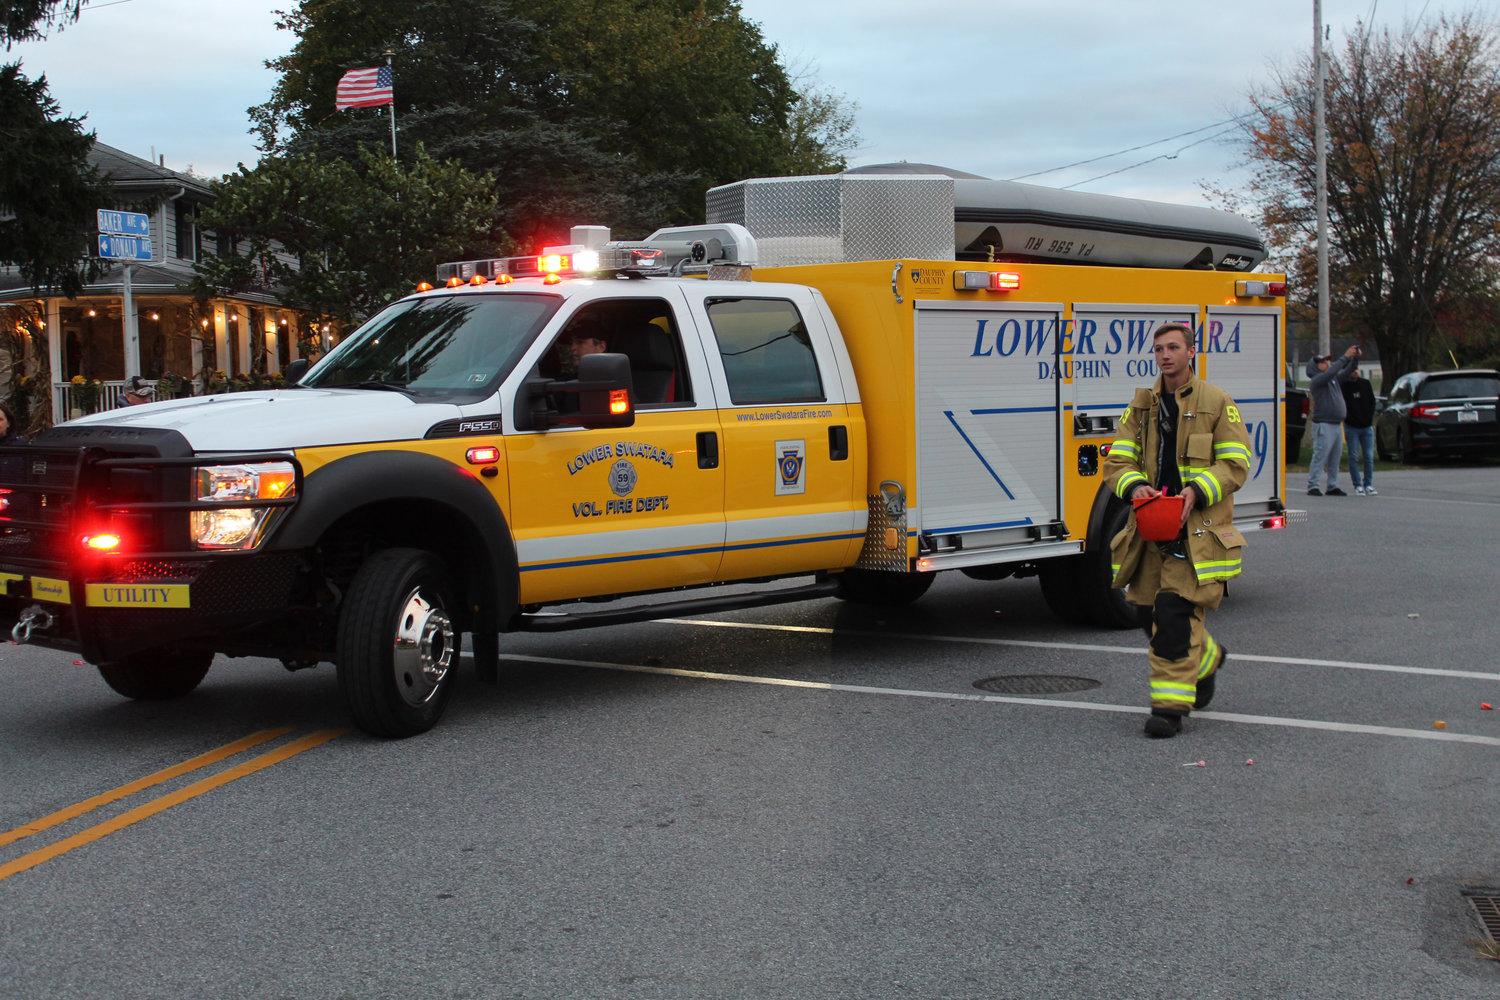 Lower Swatara firefighters walk in the Lower Swatara Halloween parade Oct. 17.